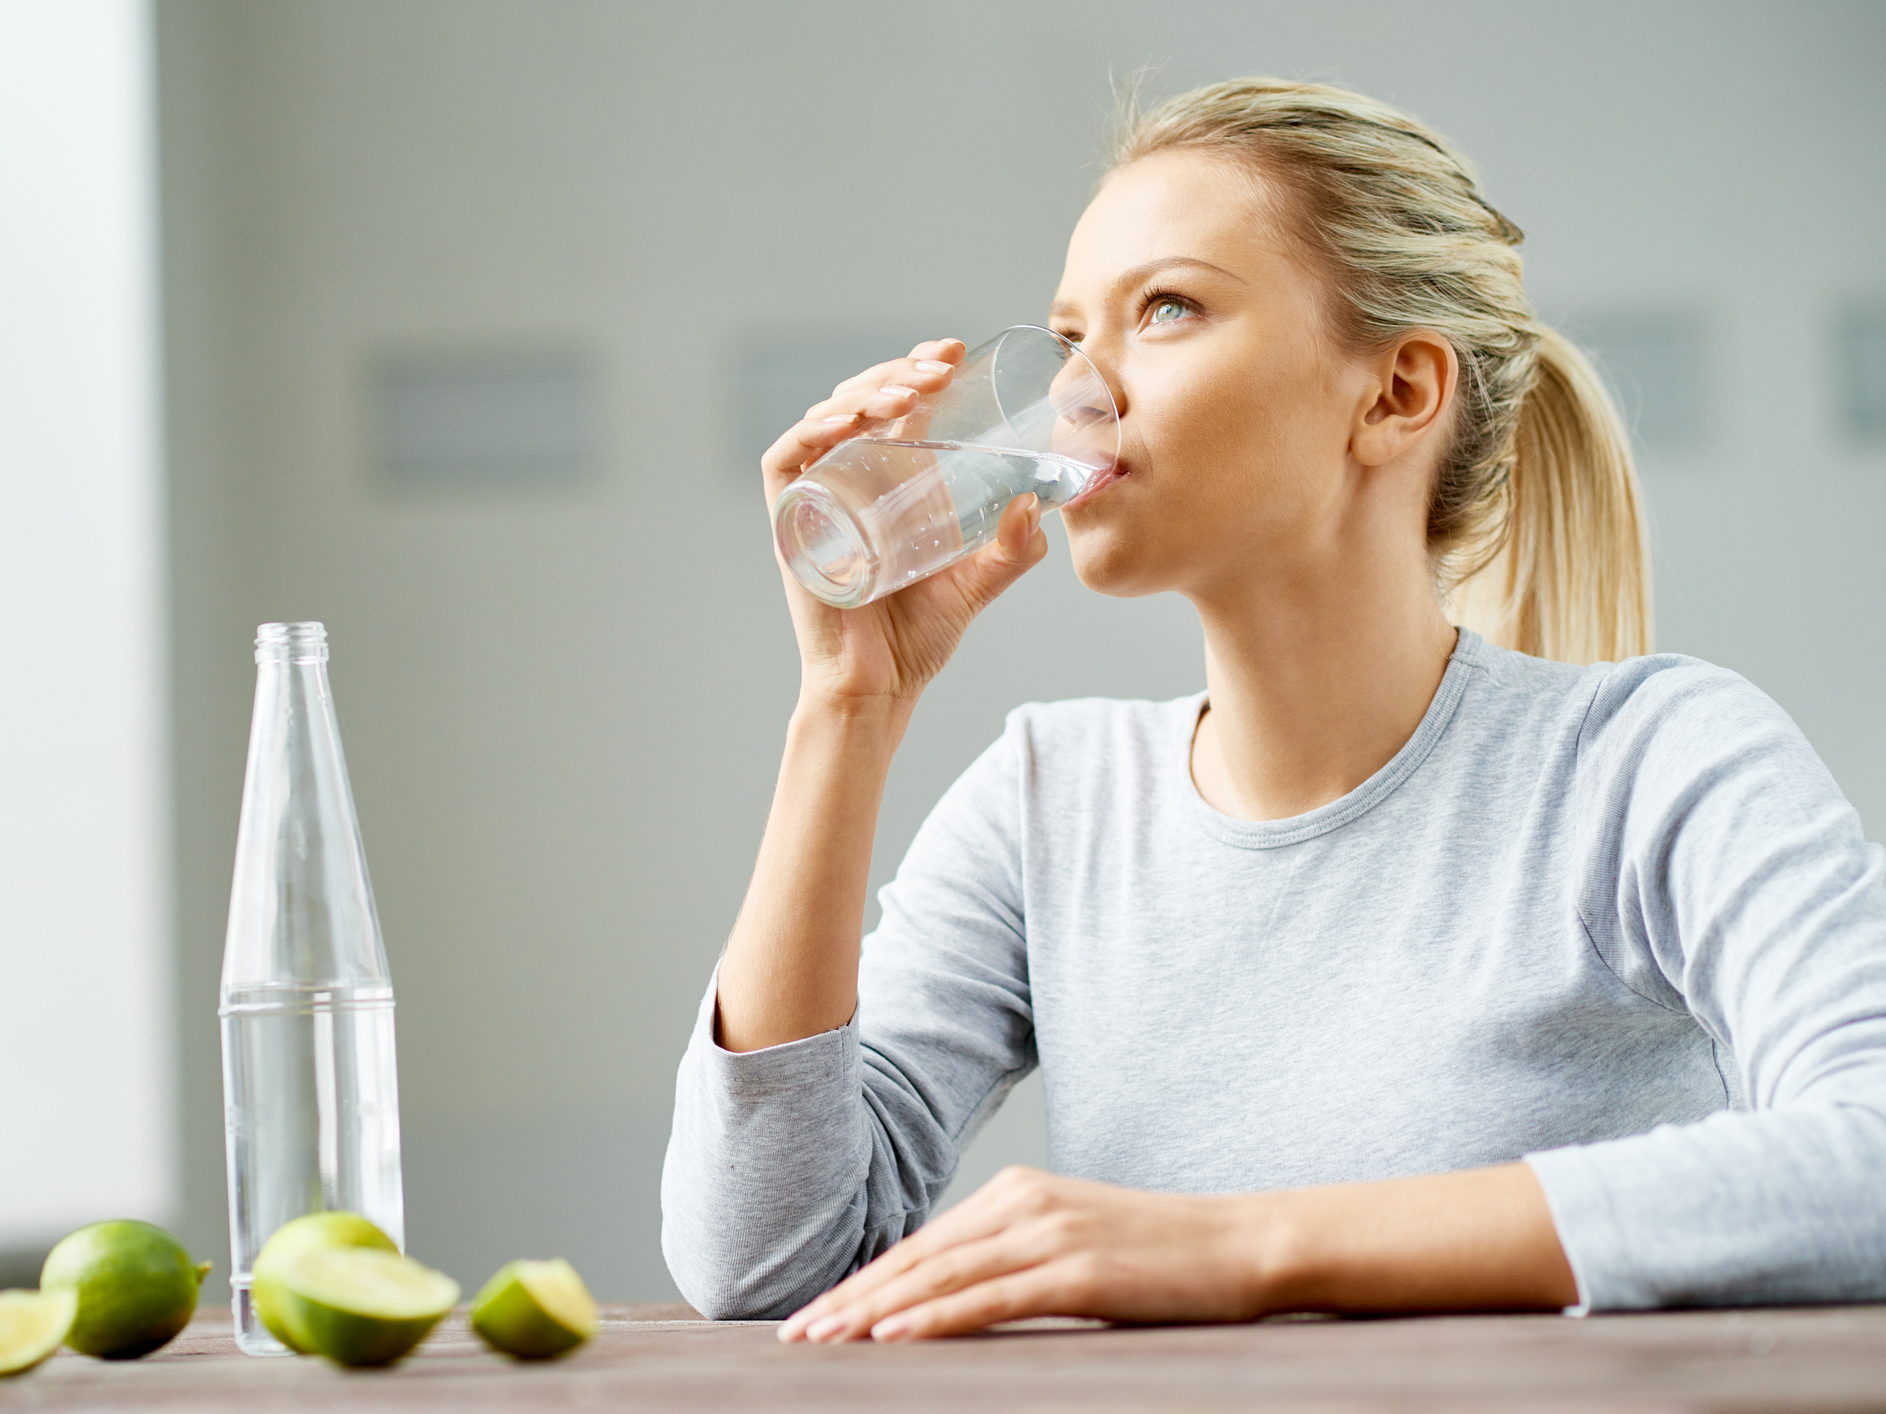 A blond-haired woman drinking a glass of water. Intermittent drinking increases oxytocin levels in the brain.